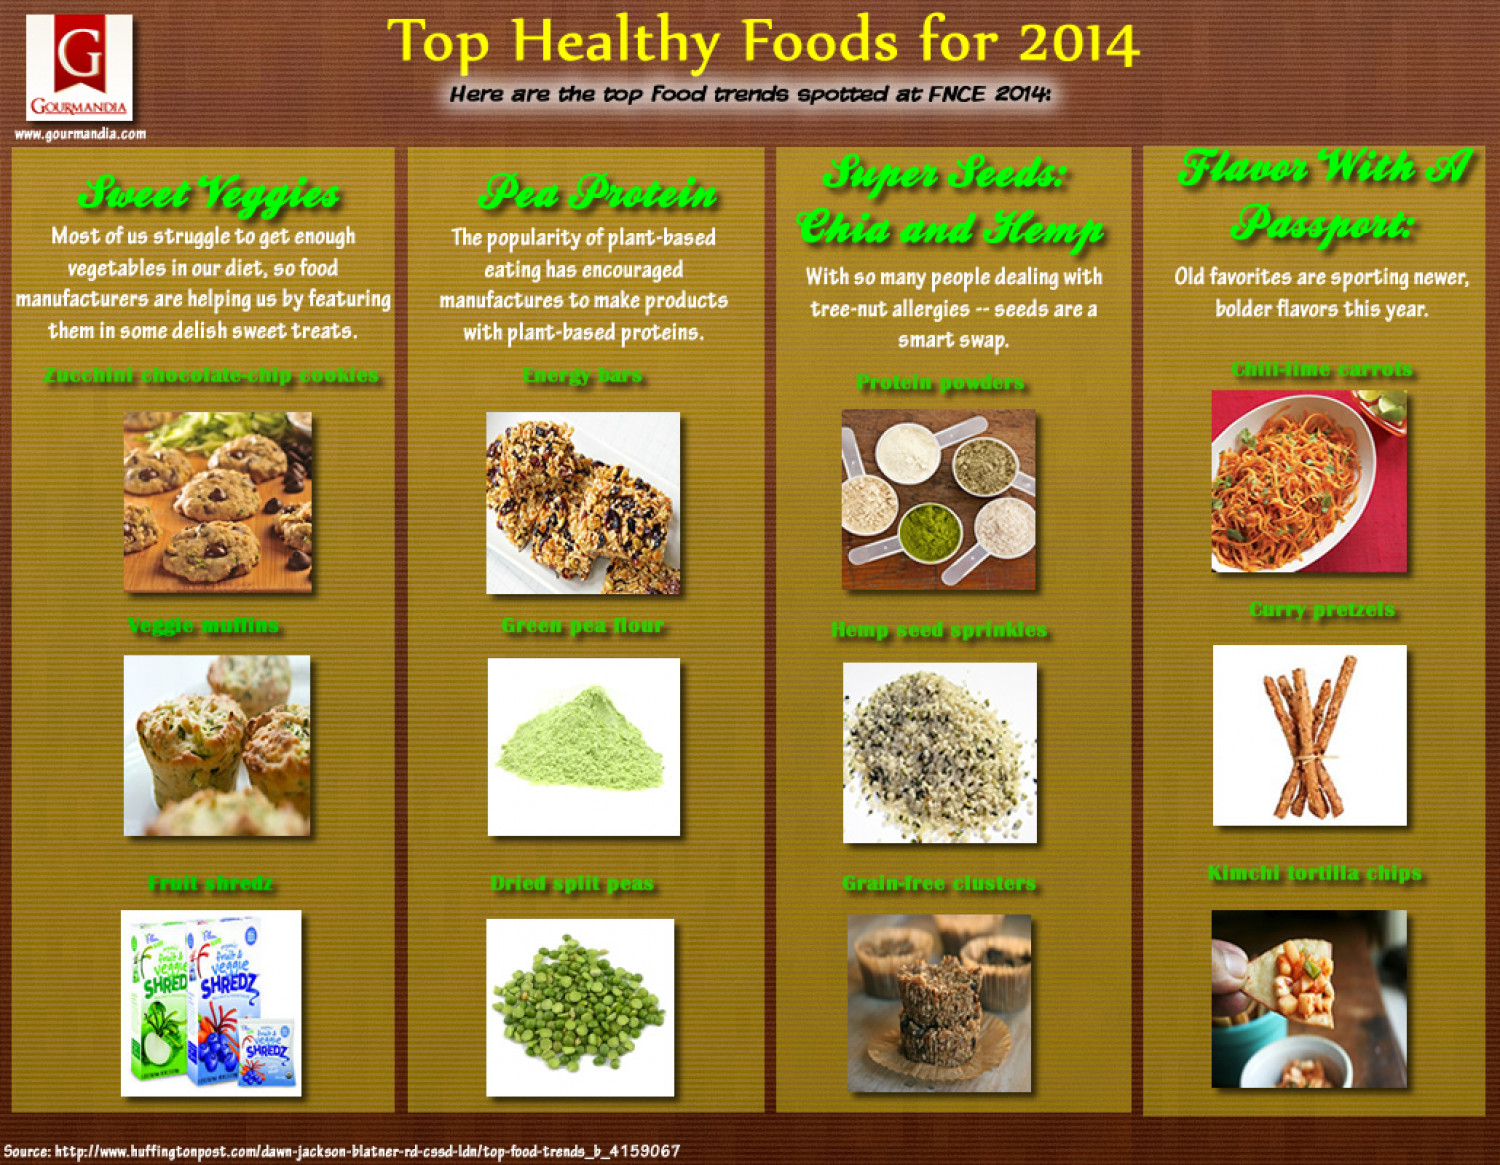 Top healhy foods for 2014 infographic